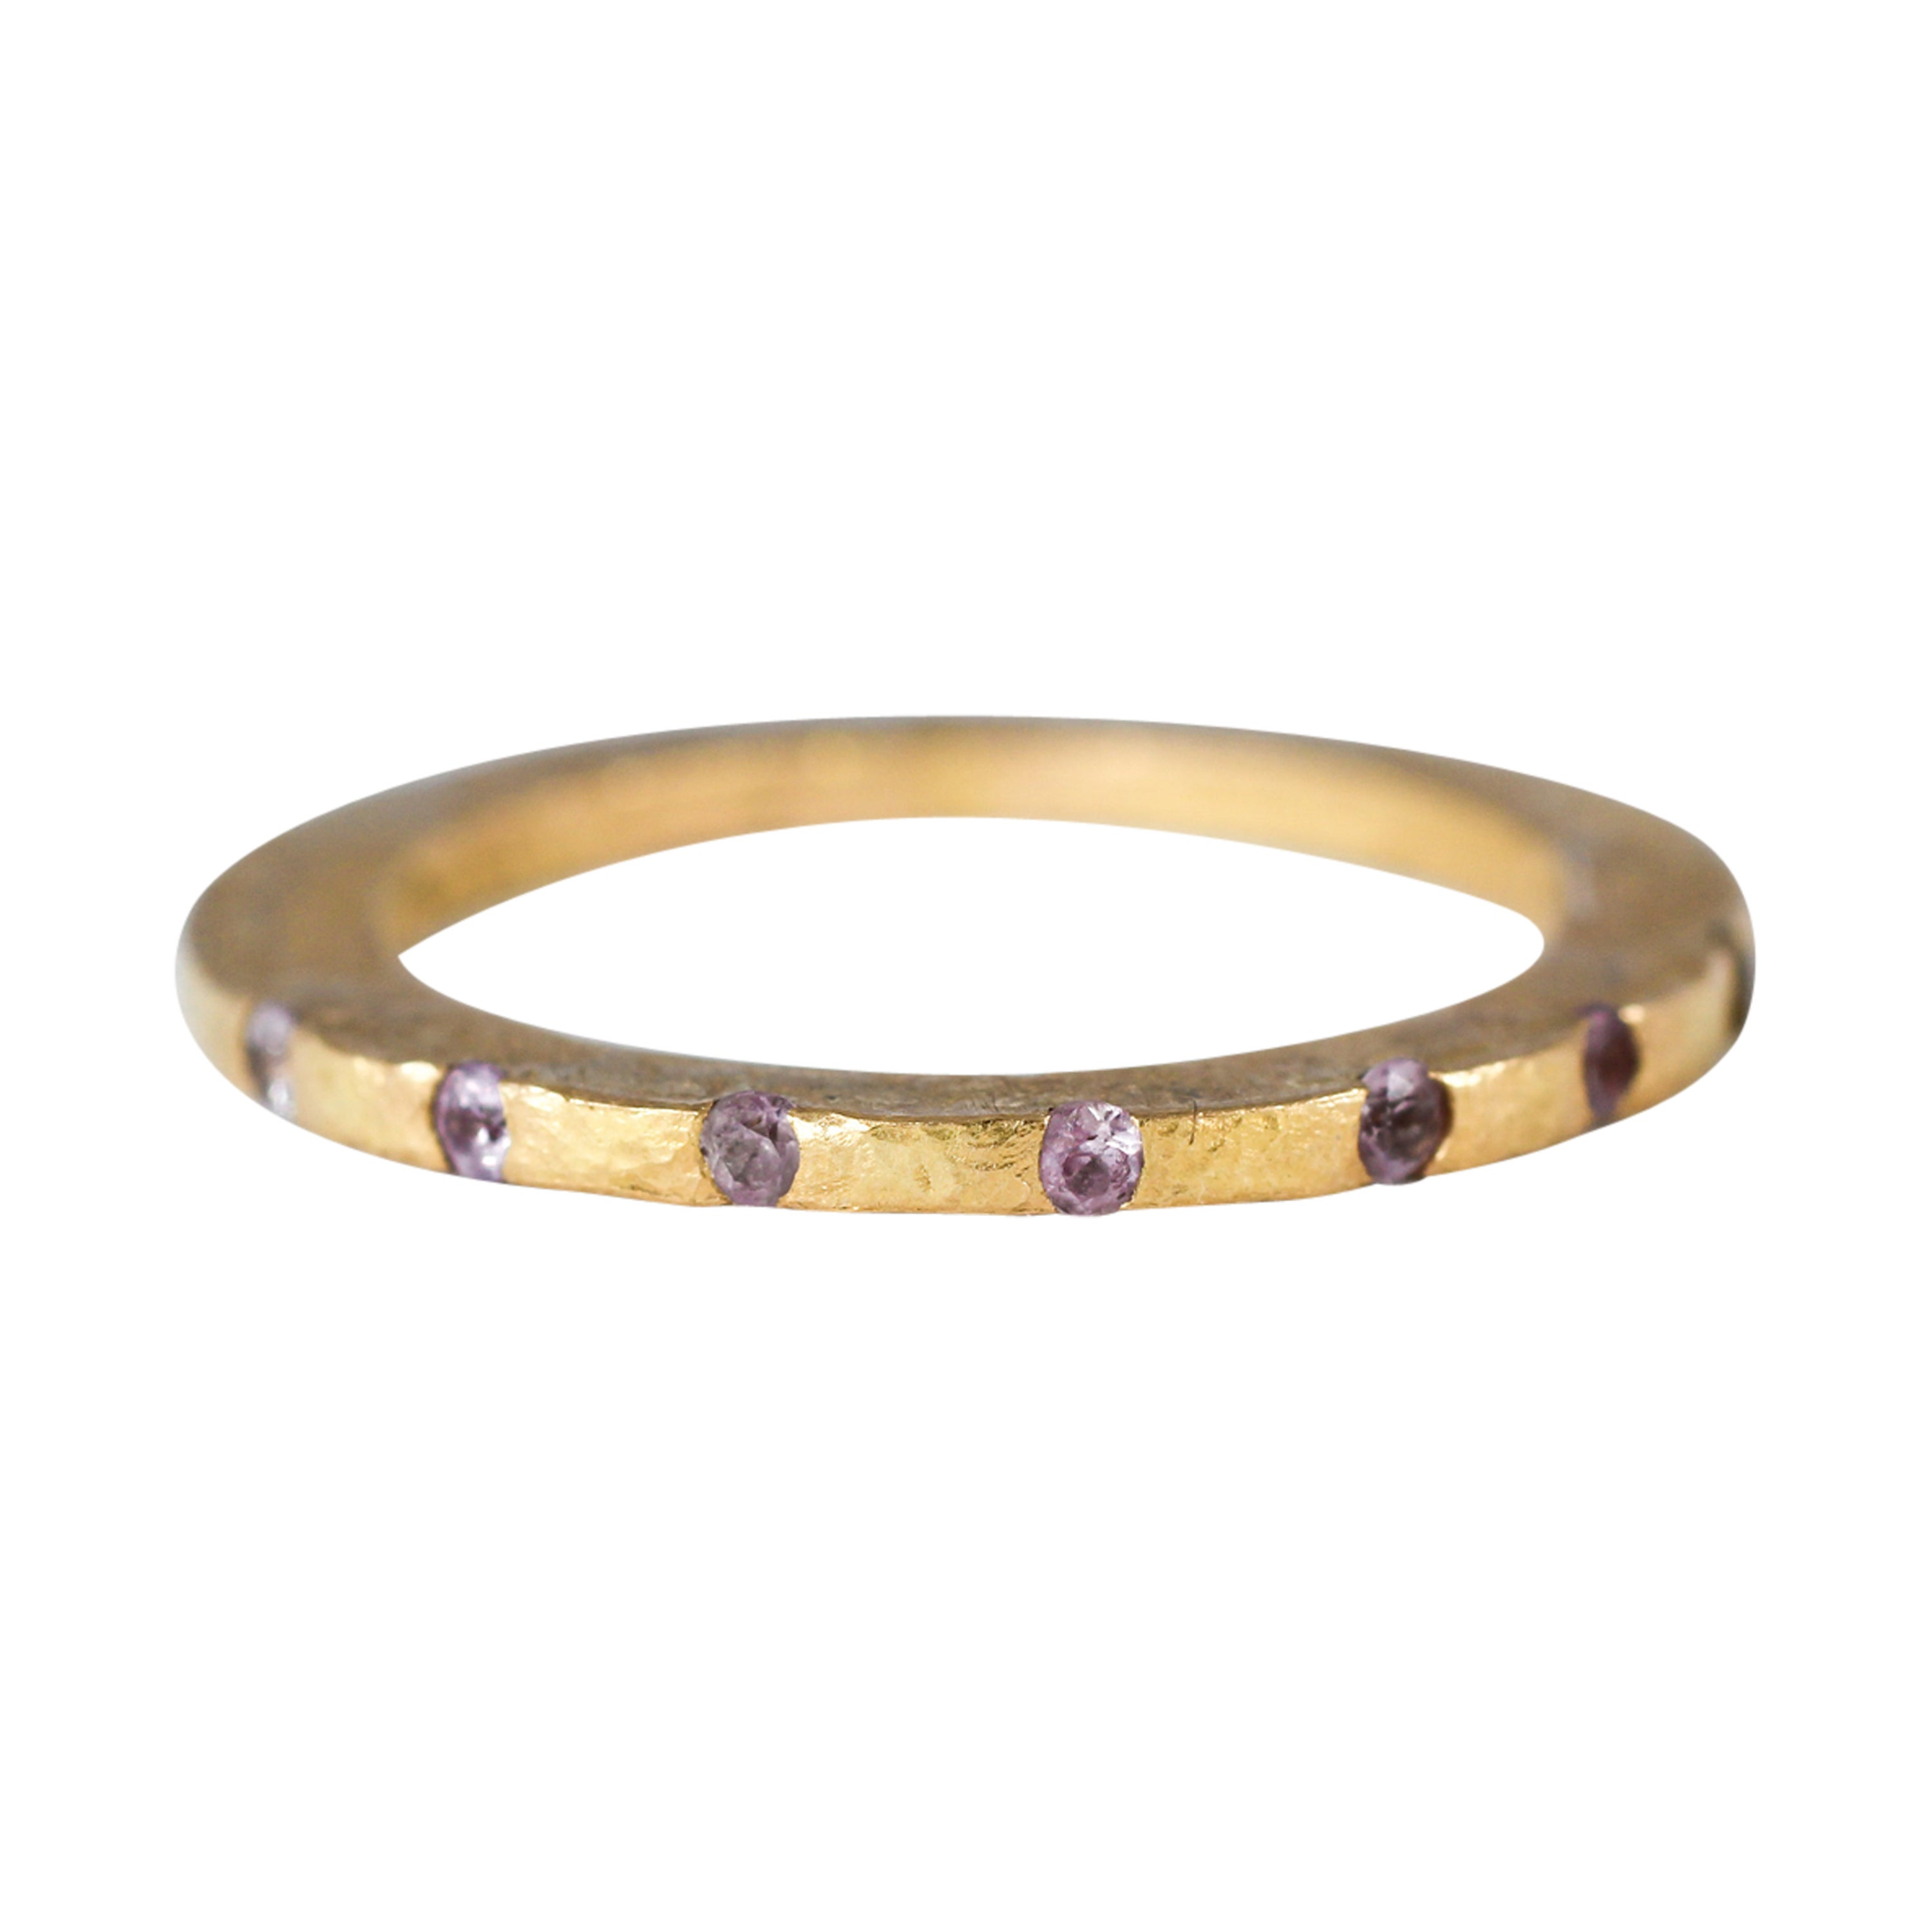 Pink Sapphires Recycled 22K Gold Bridal Wedding Ring by AB Jewelry NYC